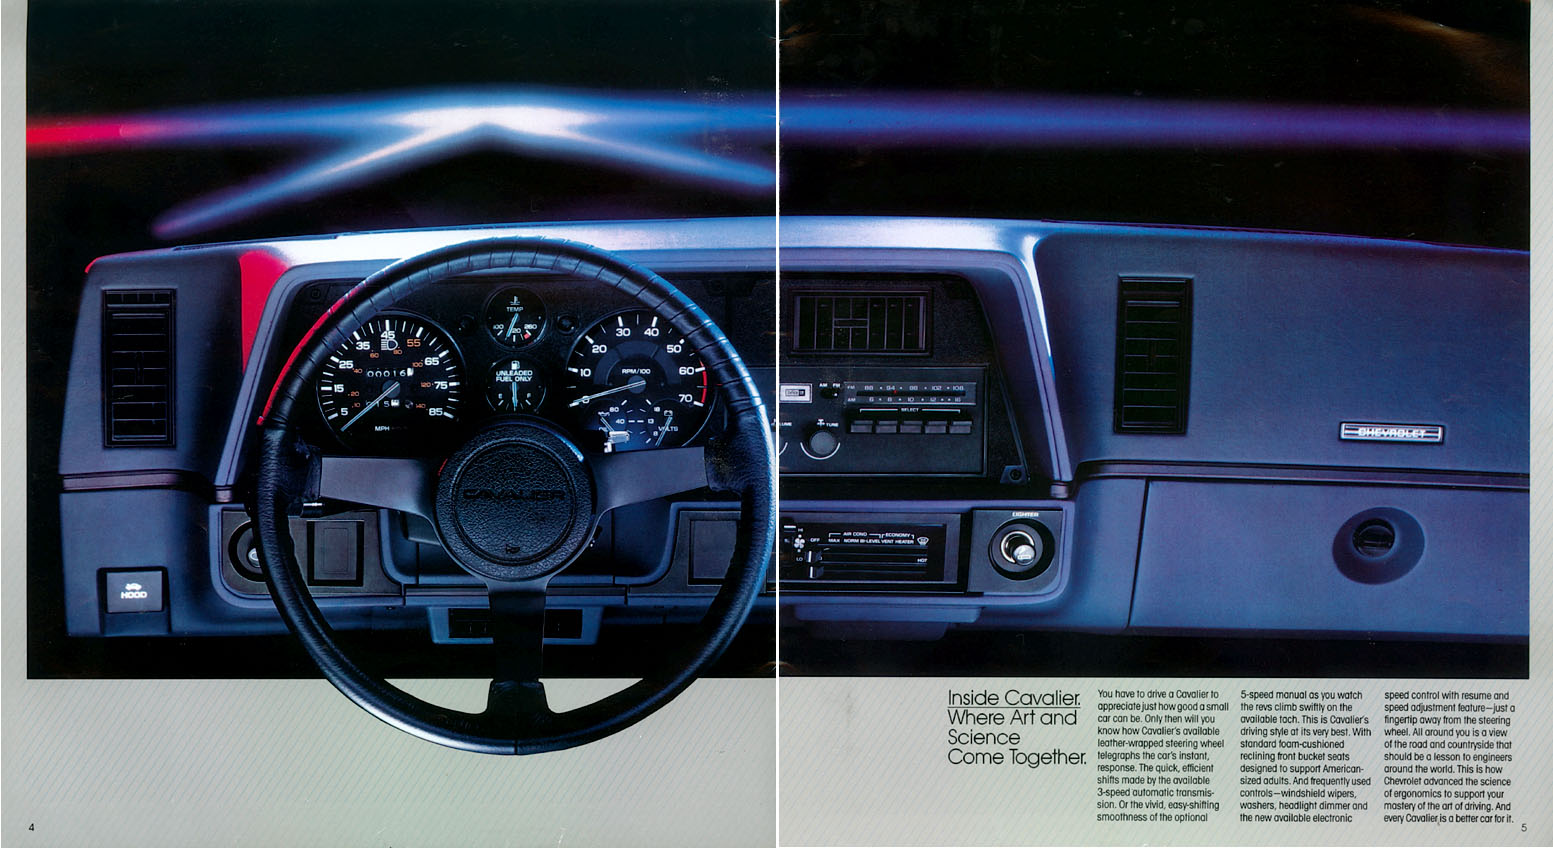 1990 Chevrolet Chevy Cavalier Owners Manual